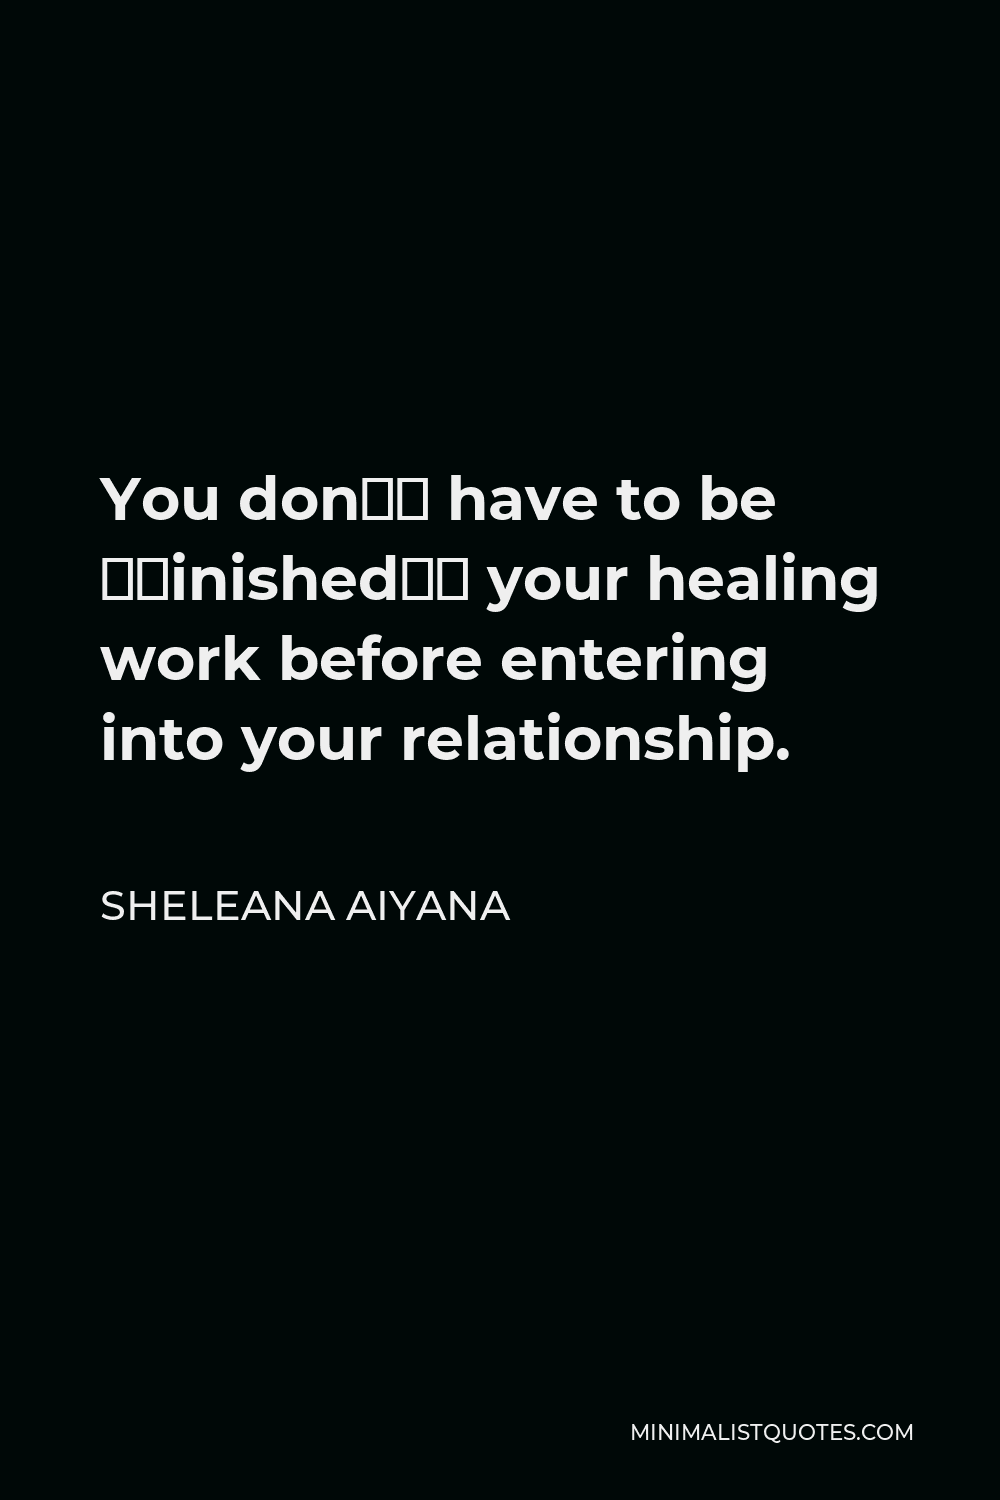 """Sheleana Aiyana Quote - You don't have to be """"finished"""" your healing work before entering into your relationship."""